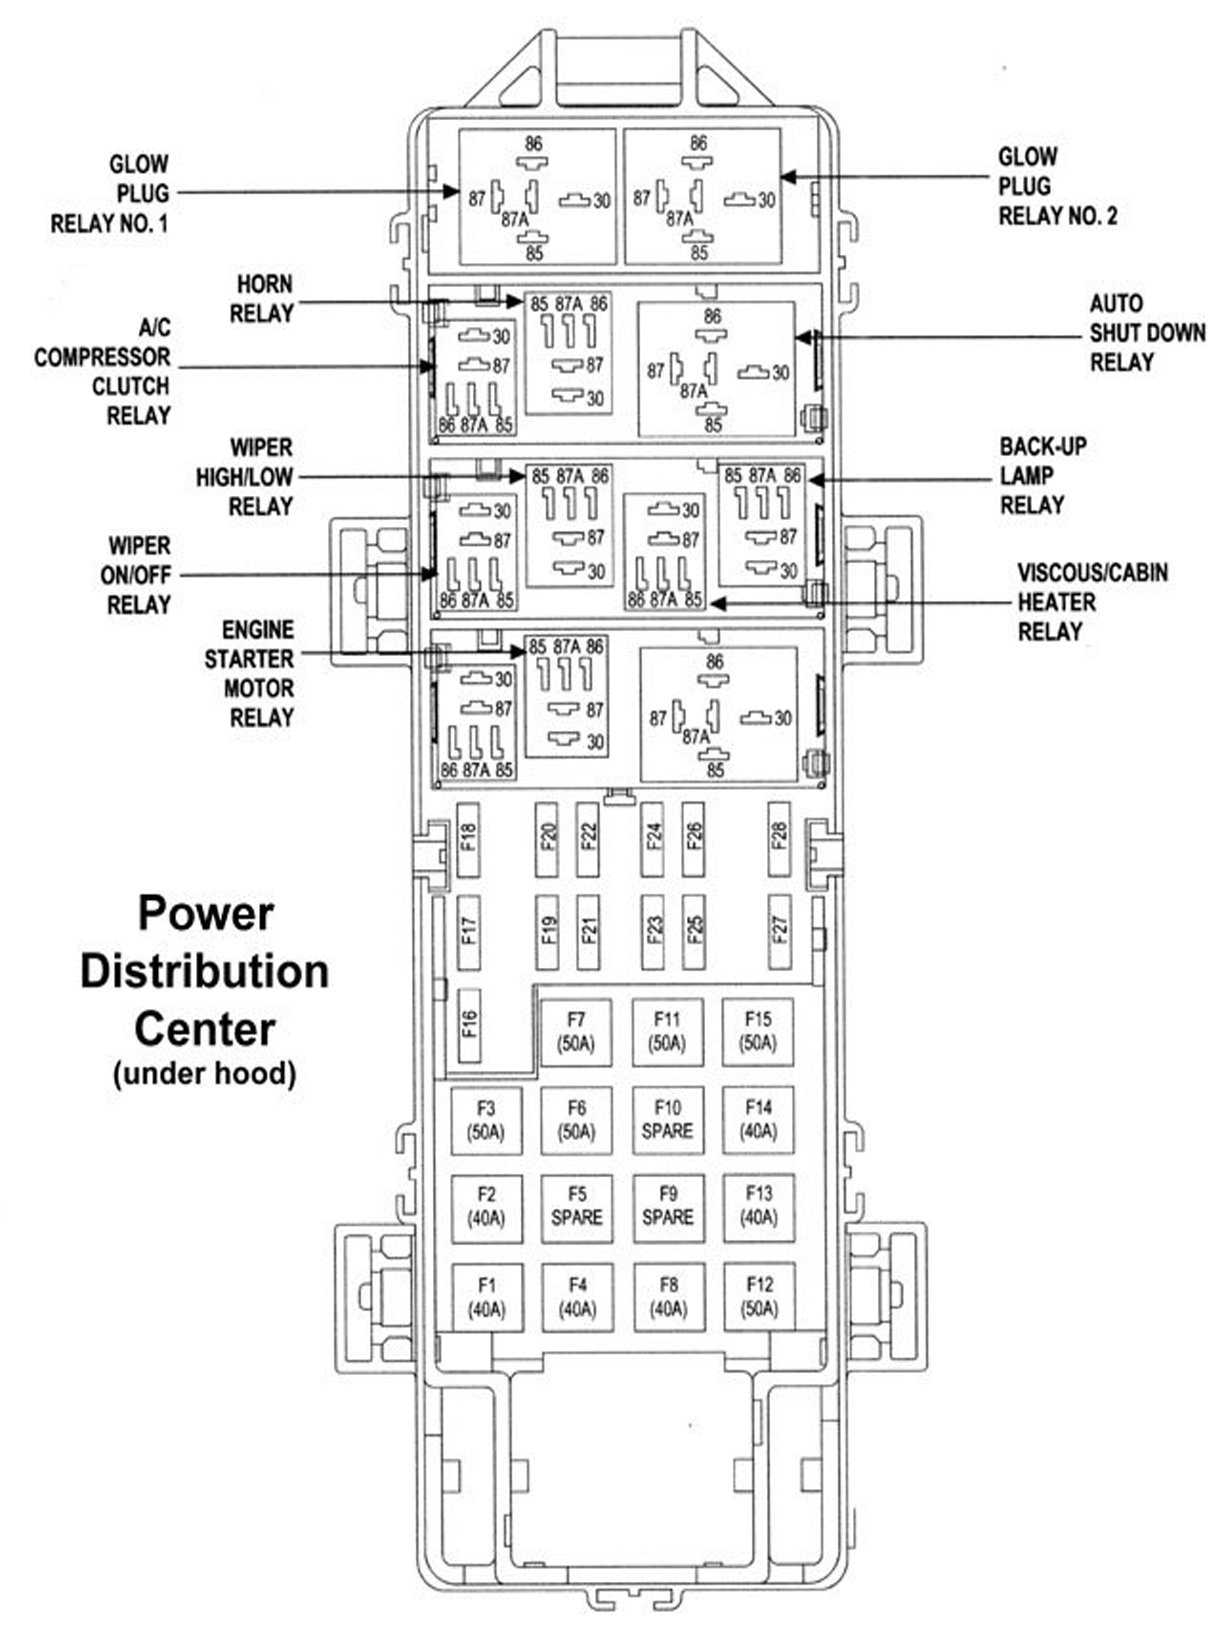 jeep liberty fuse box diagram image jeep wj fuse box diagram jeep wiring diagrams on 2007 jeep liberty fuse box diagram